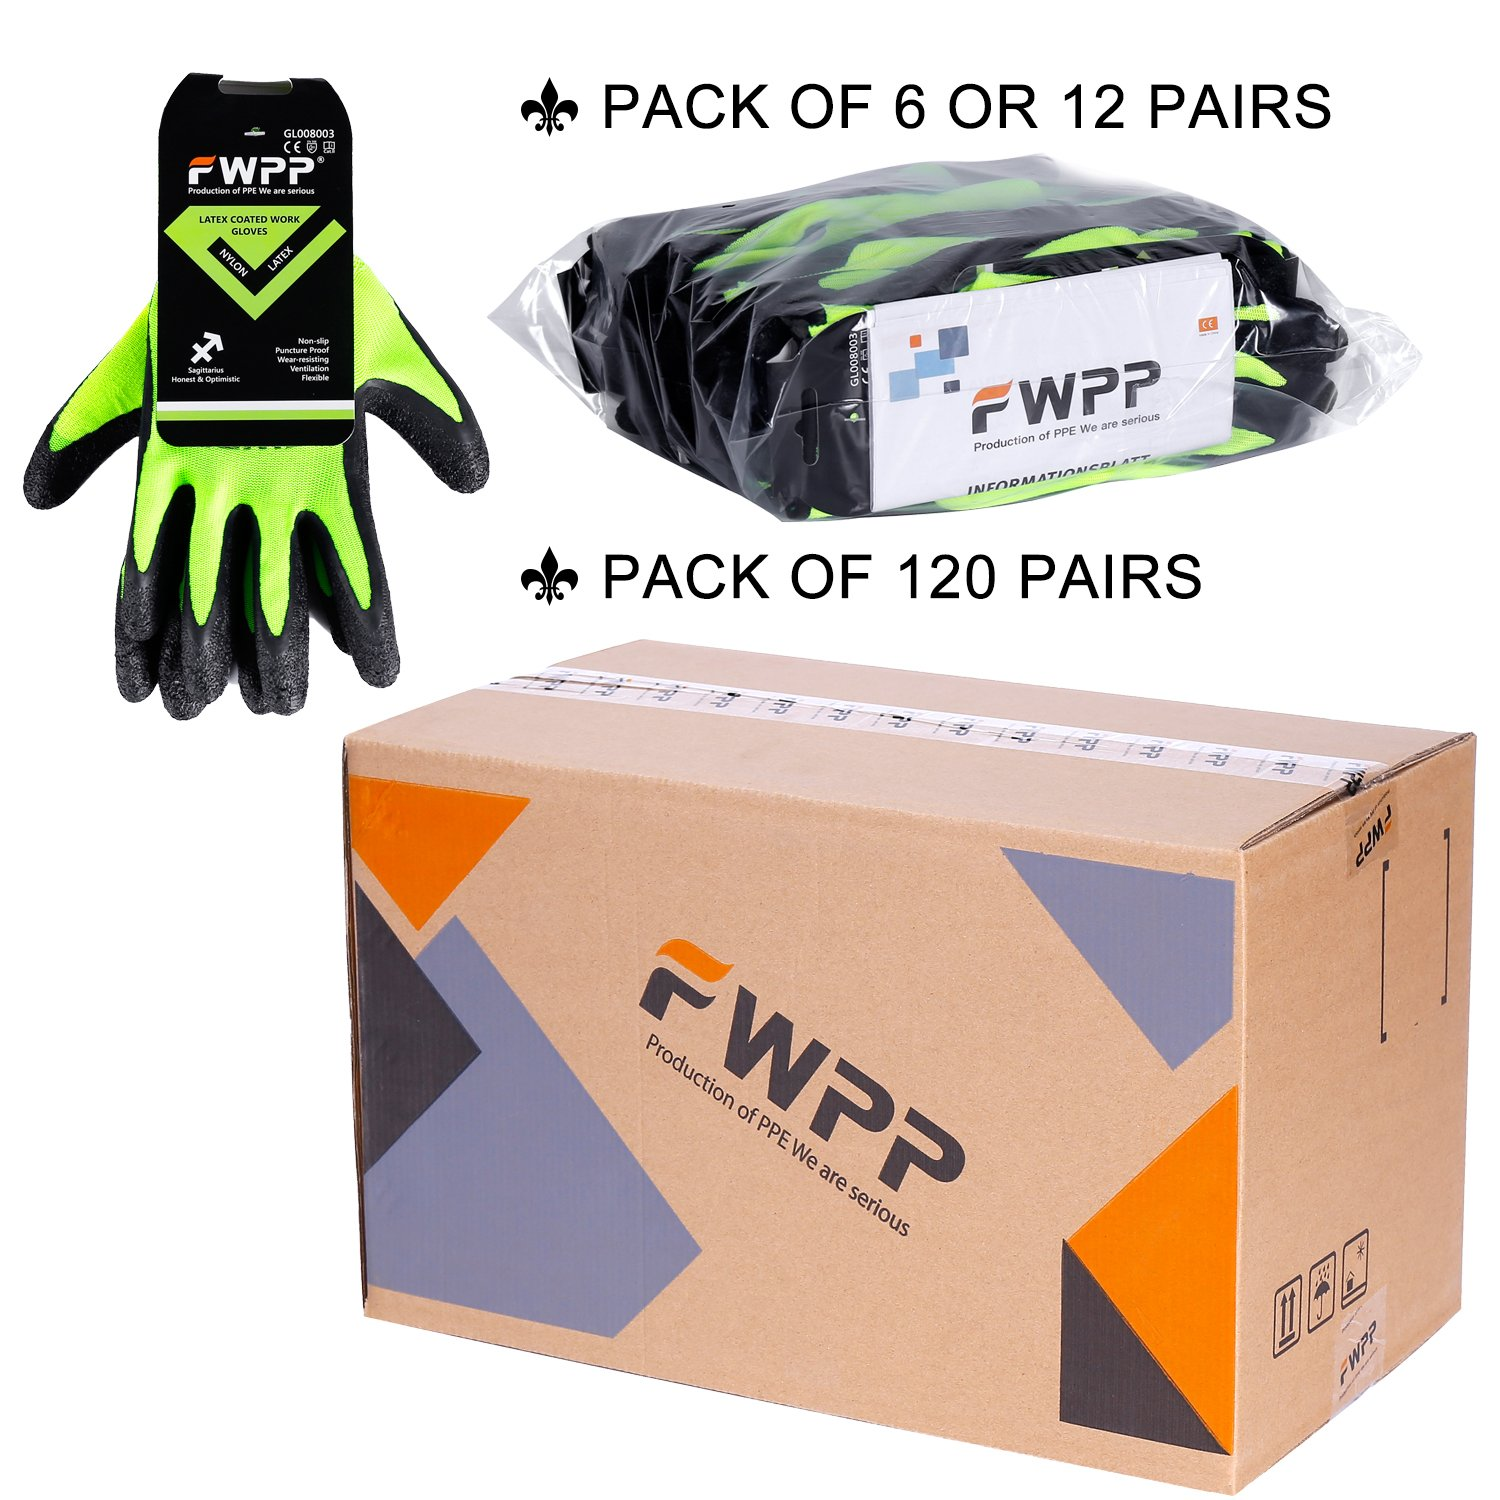 FWPP GL008003L6 Latex Coated Work Gloves Construction Gloves Pack of 6Pairs Large Fluorescence Yellow